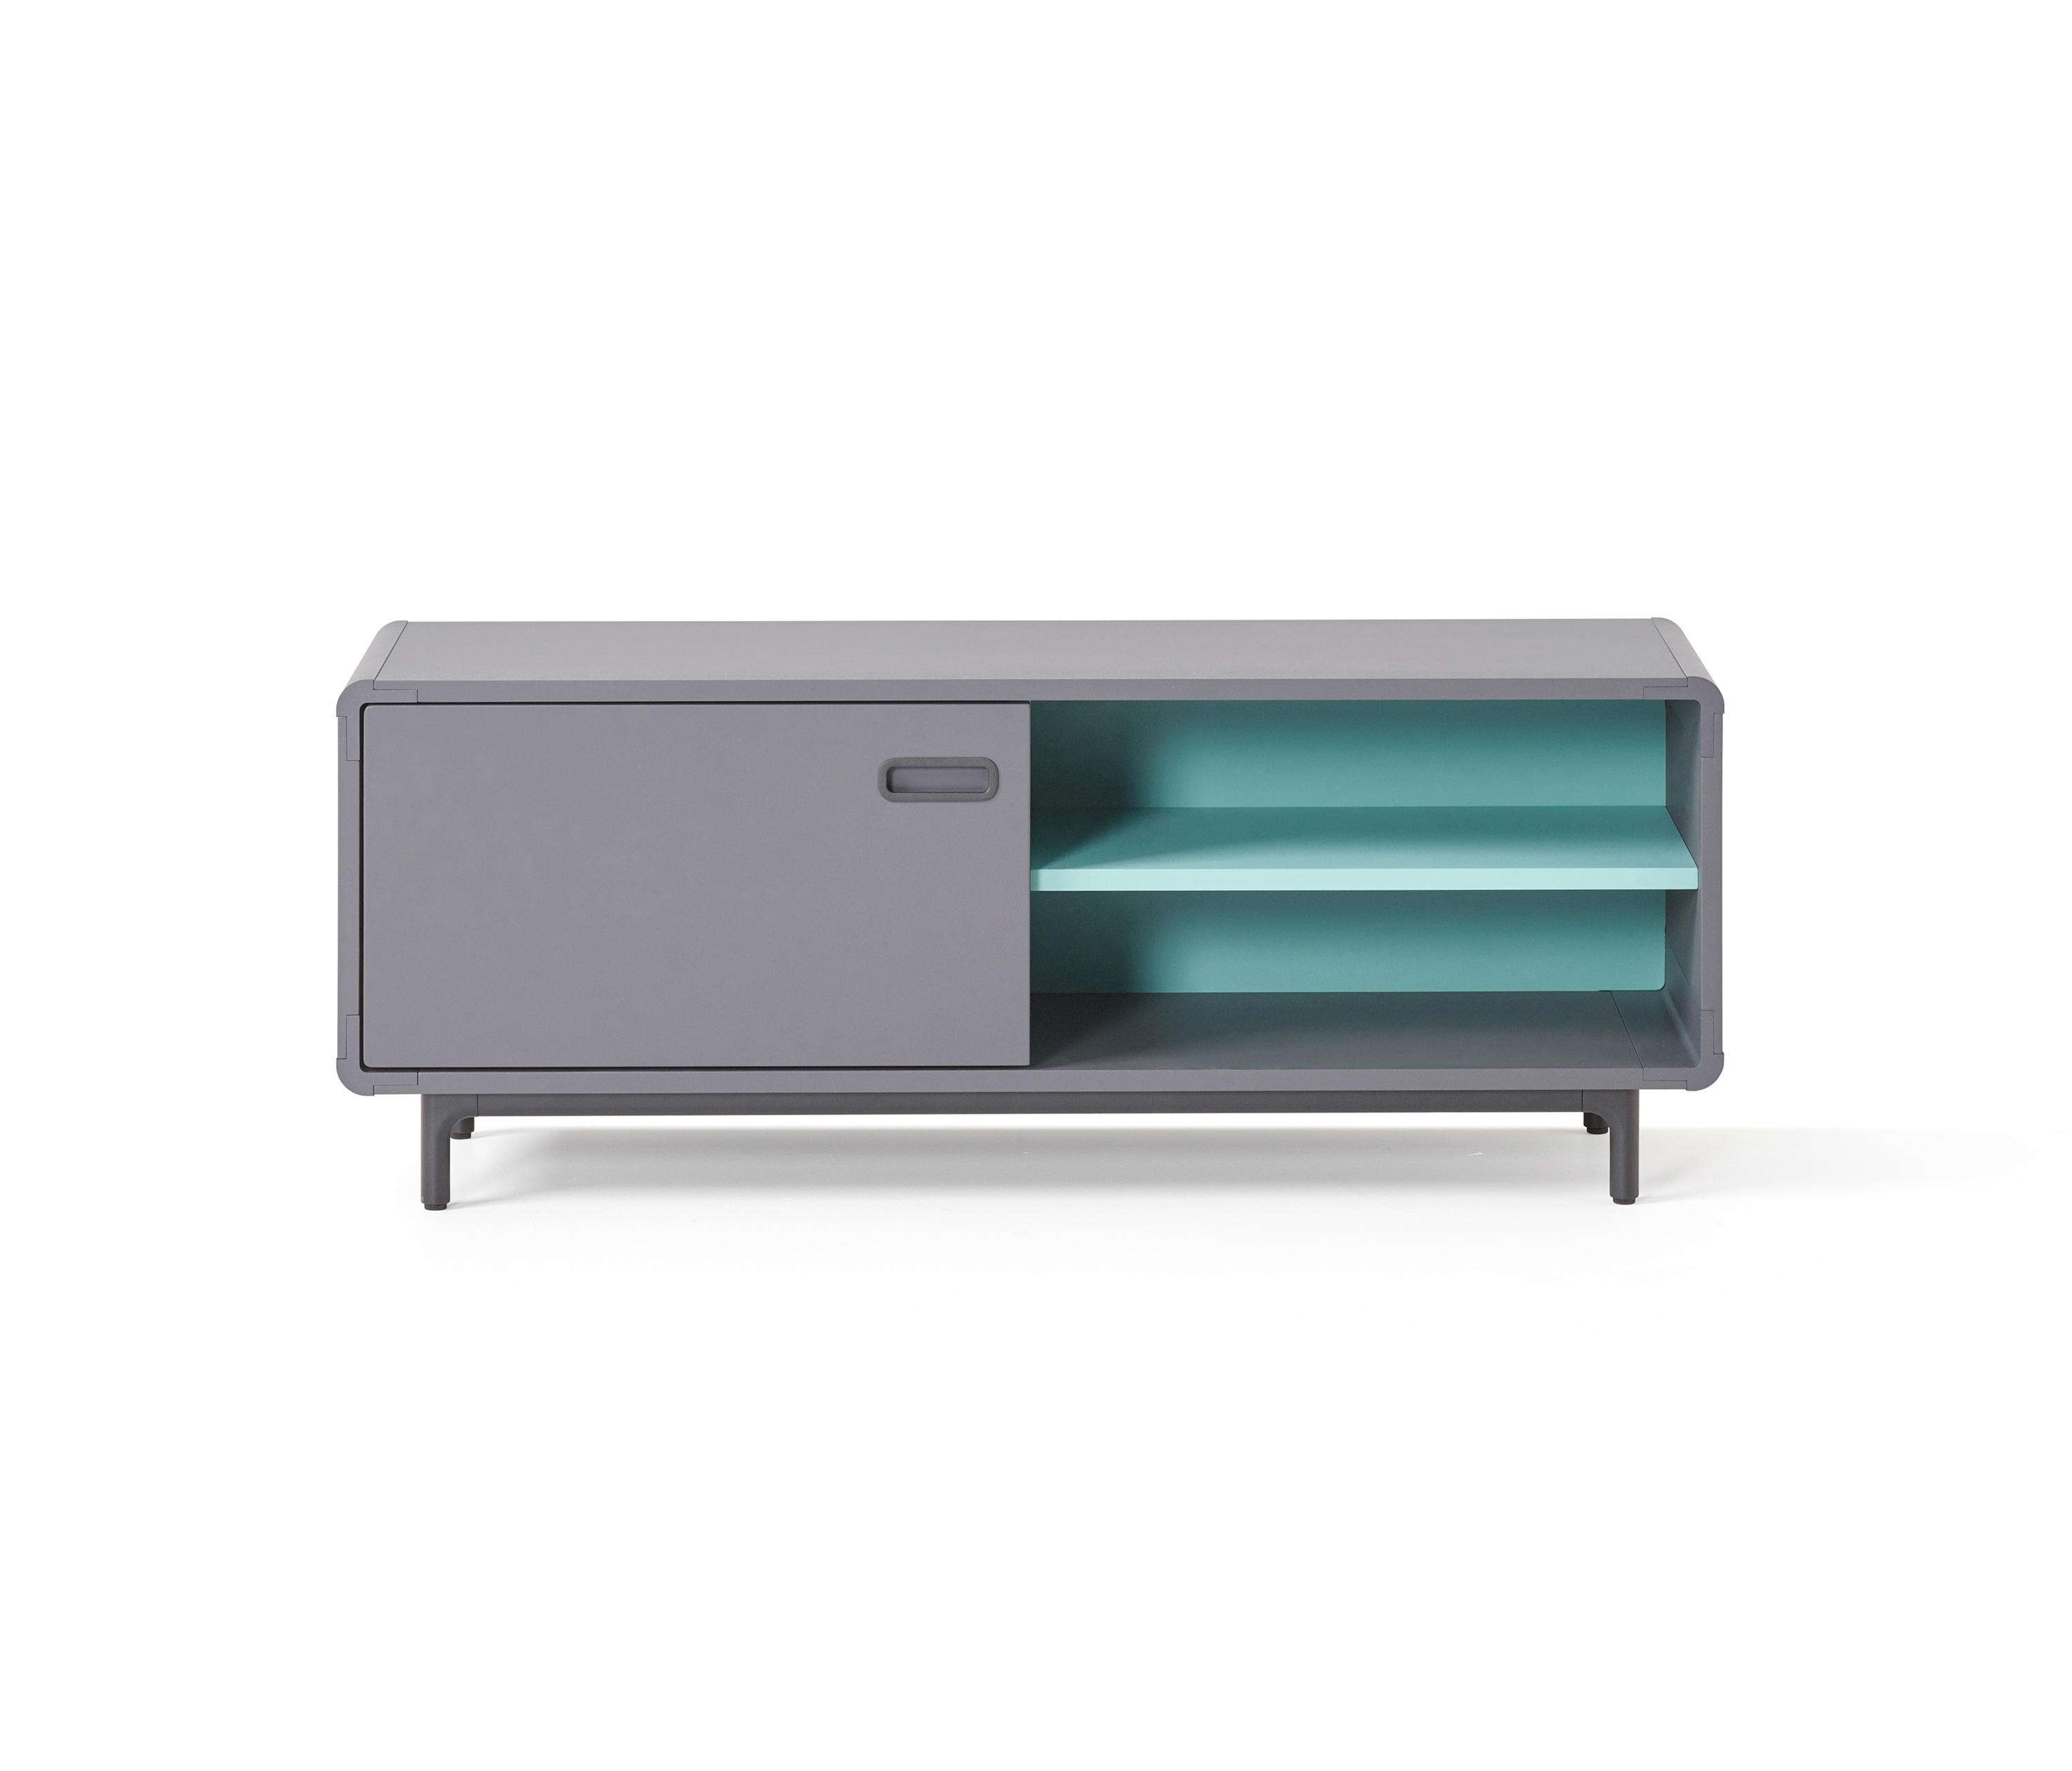 Extens | Dressoir Low – Sideboards From Artifort | Architonic Throughout Low Wooden Sideboards (View 5 of 20)